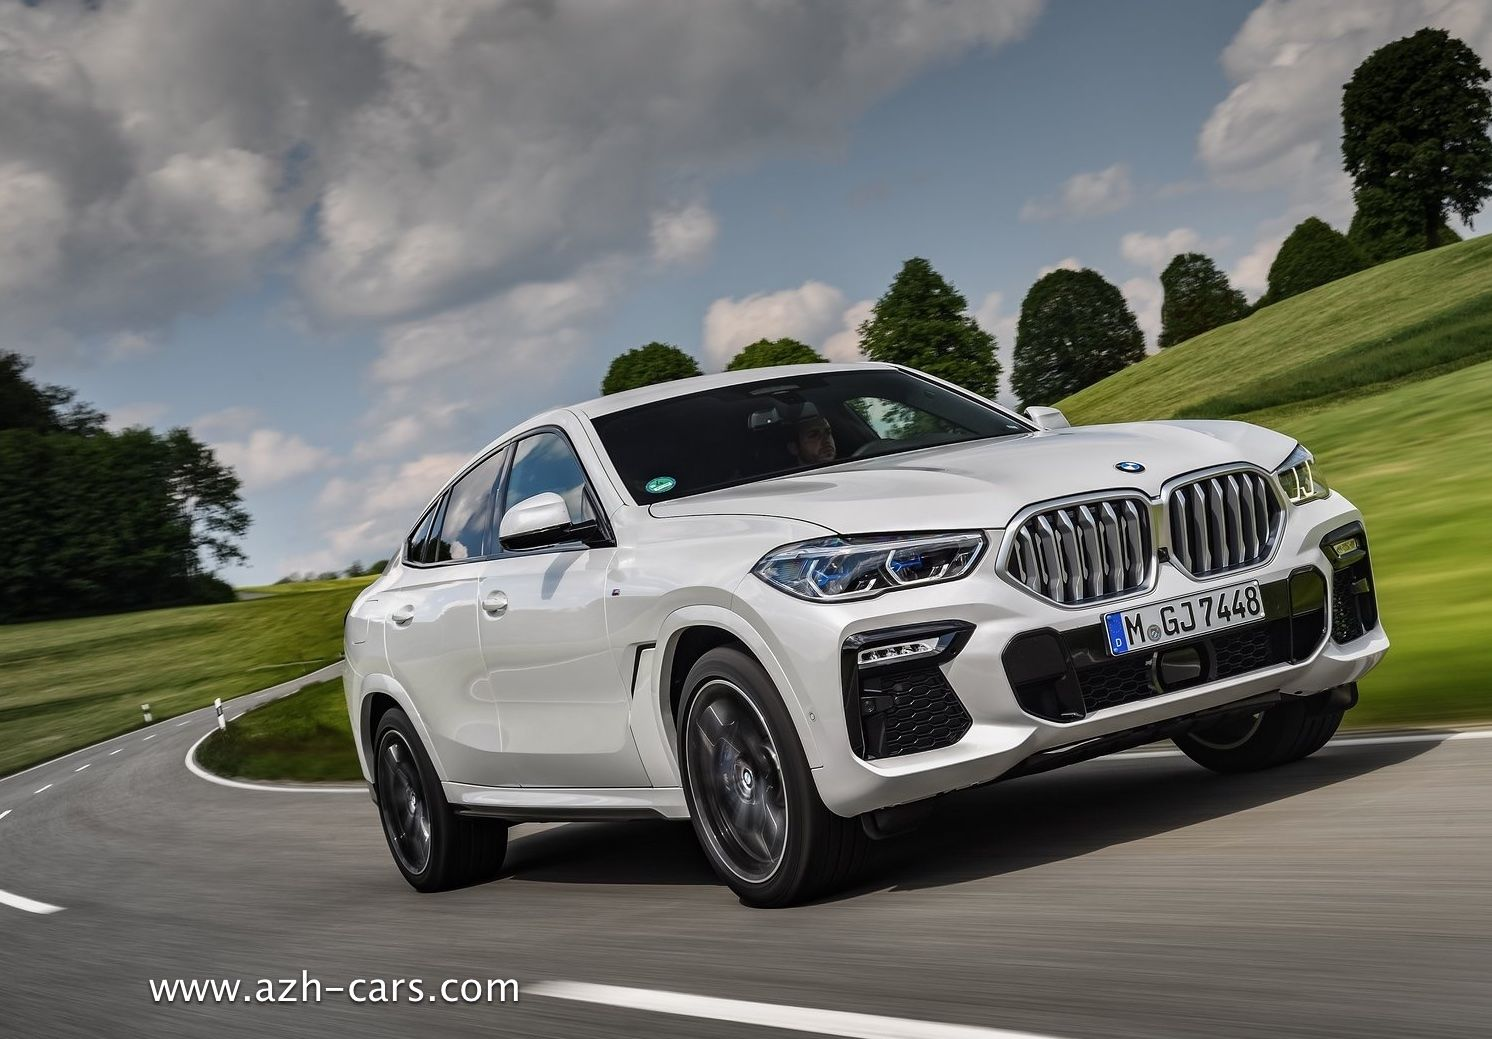 Bmw X6 2020 In 2020 Bmw X6 Bmw Bmw Car